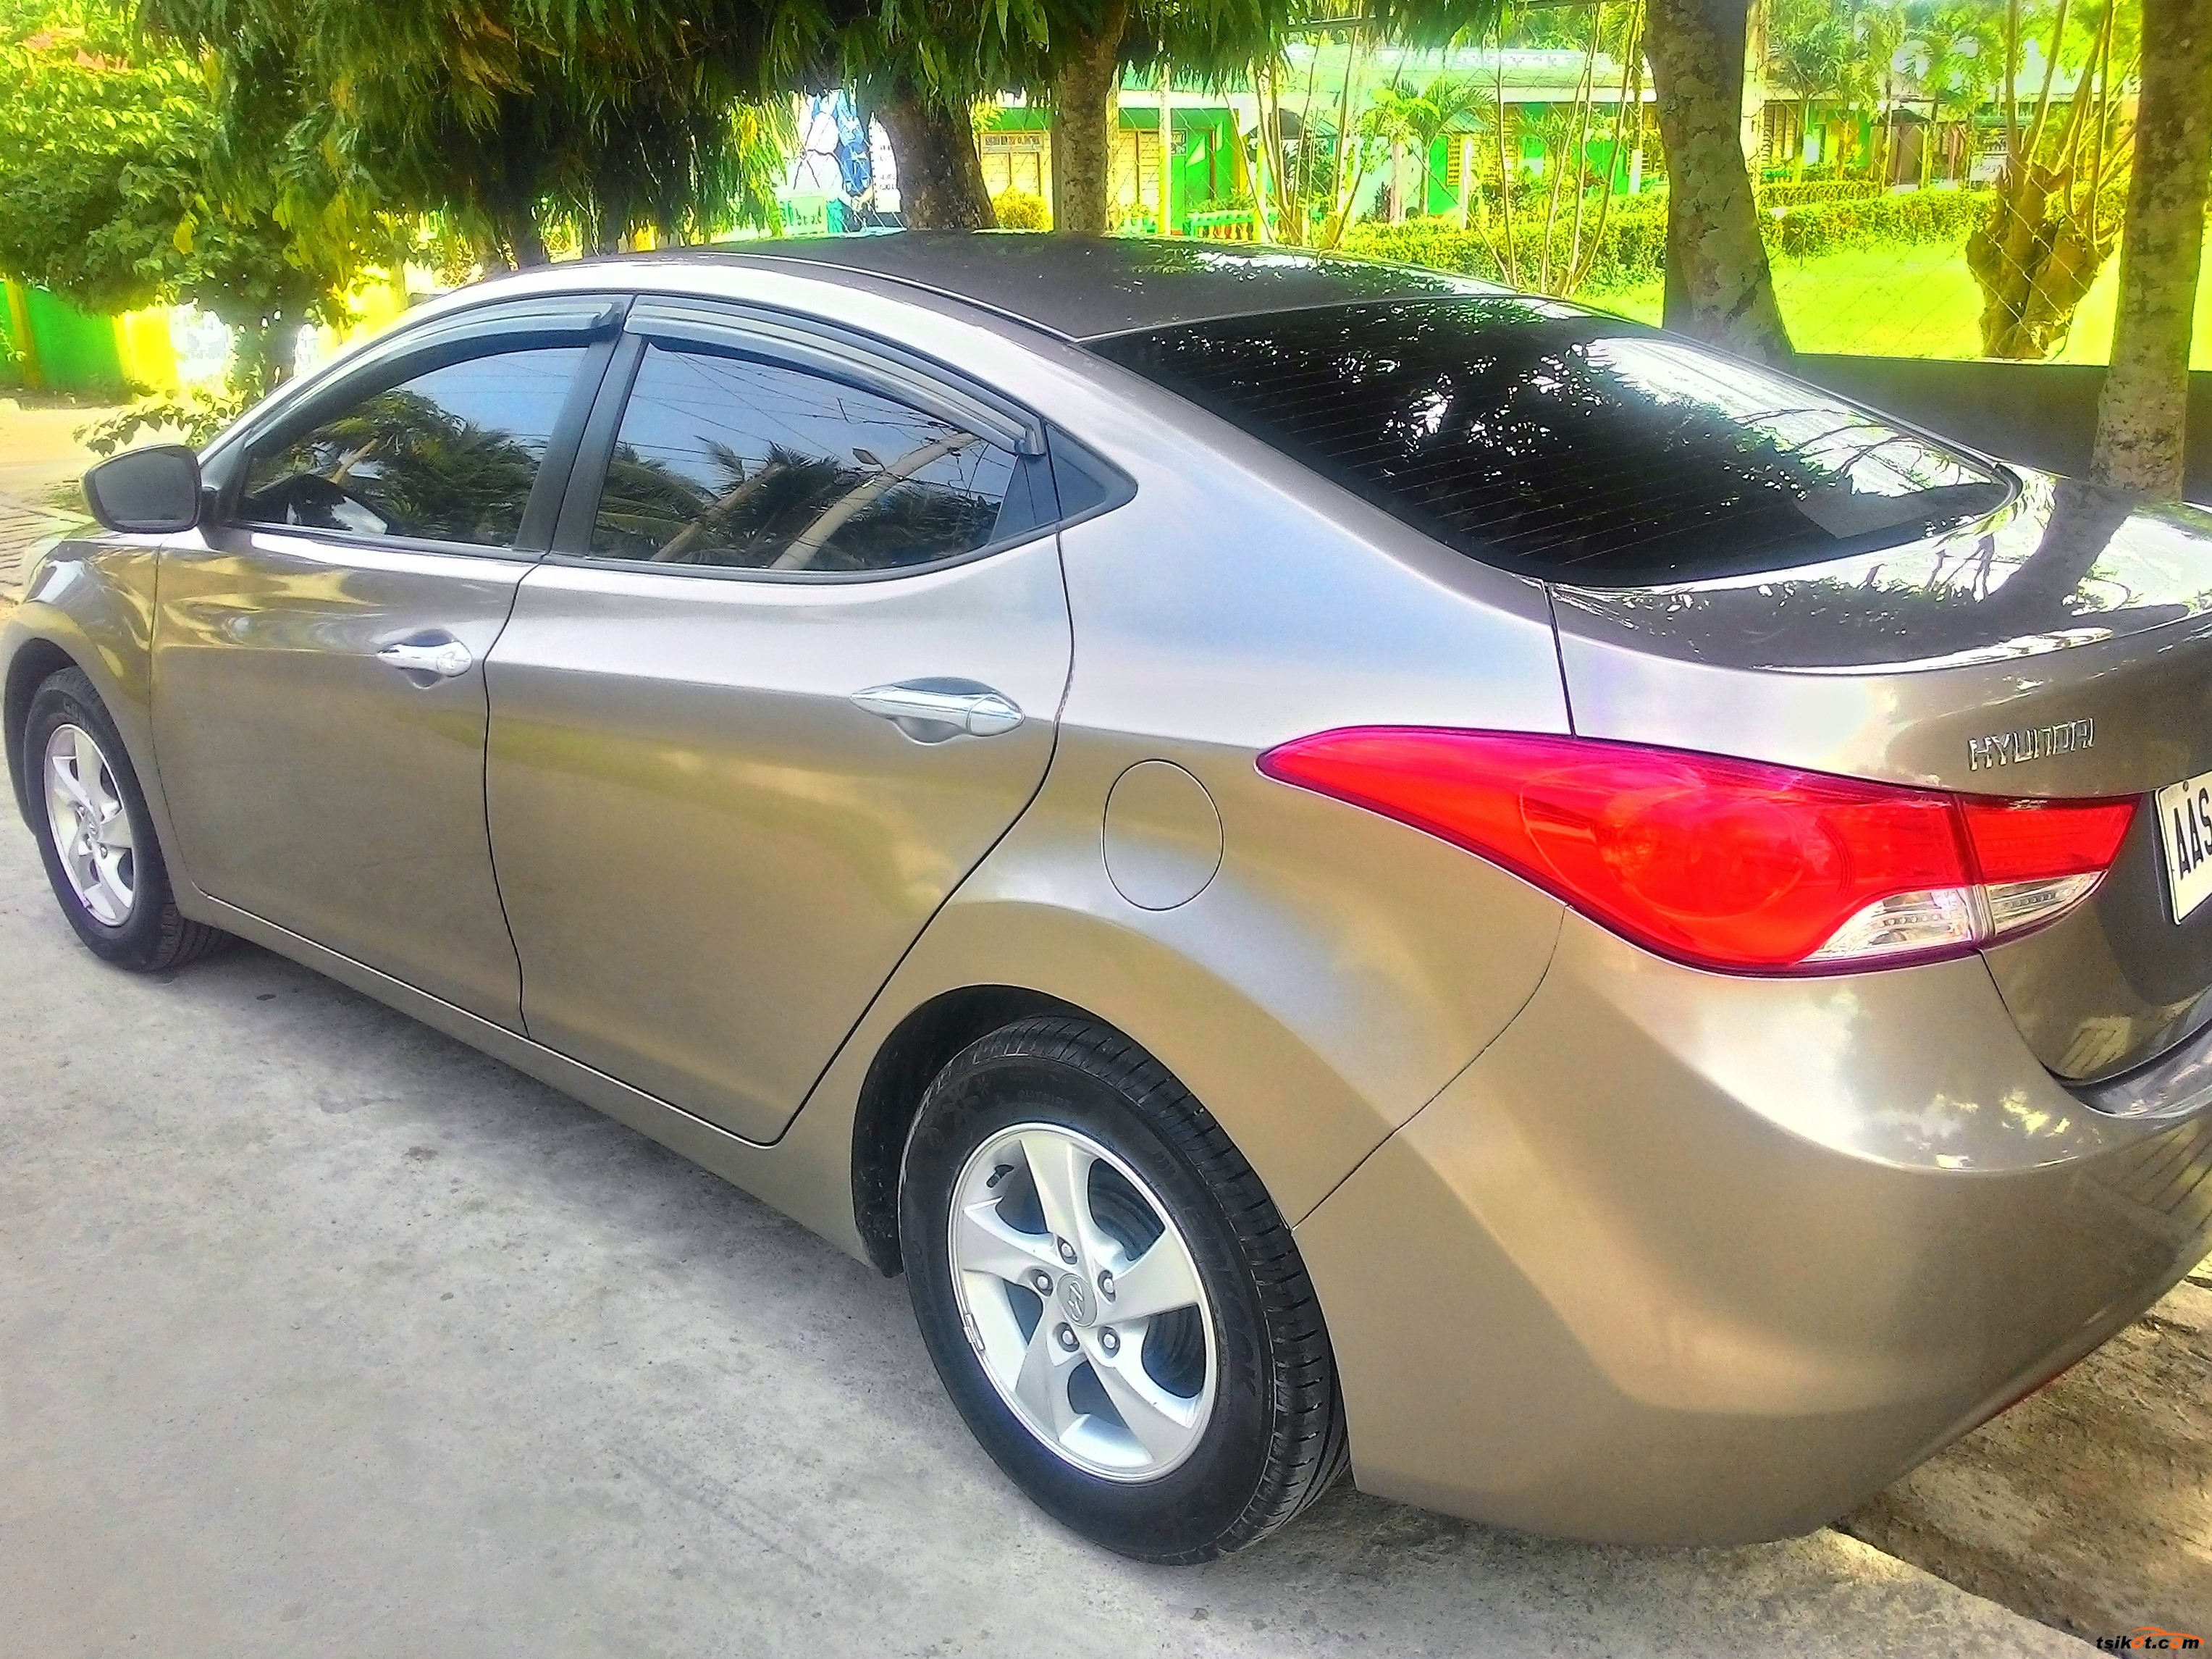 hyundai elantra 2014 car for sale metro manila philippines. Black Bedroom Furniture Sets. Home Design Ideas